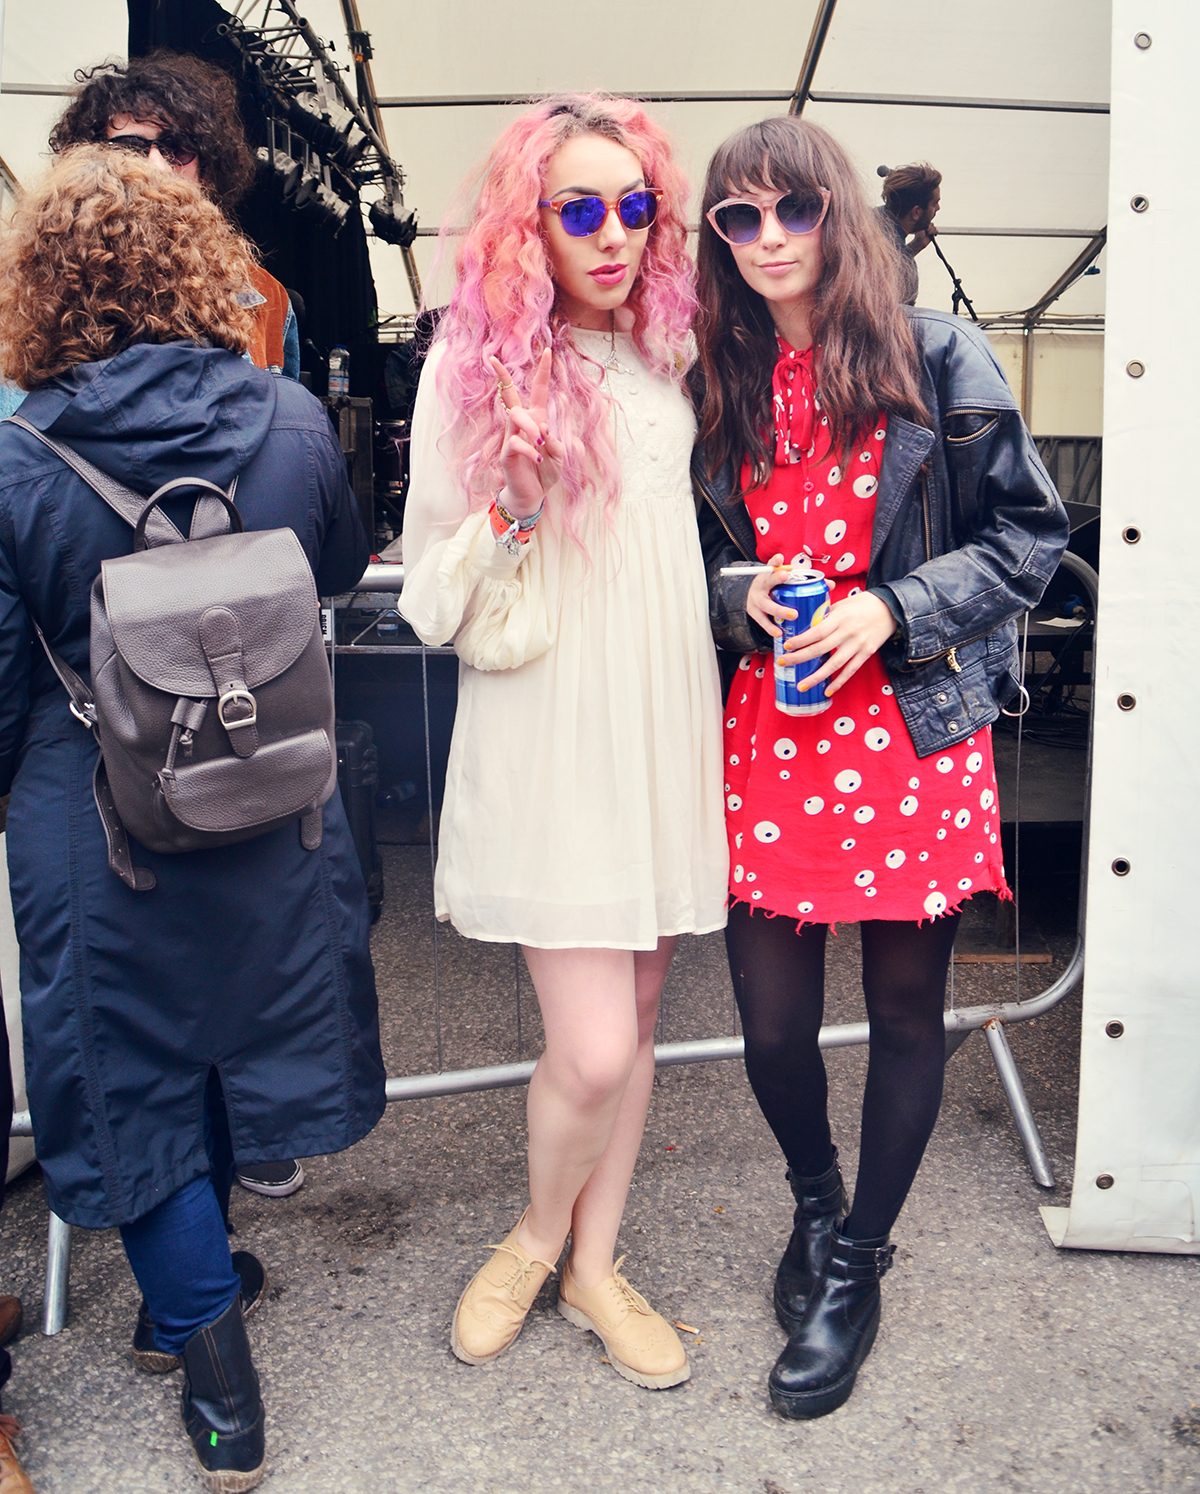 Festival Fashion Blogger Stephi LaReine with musician Findlay at Liverpool Sound City 2015